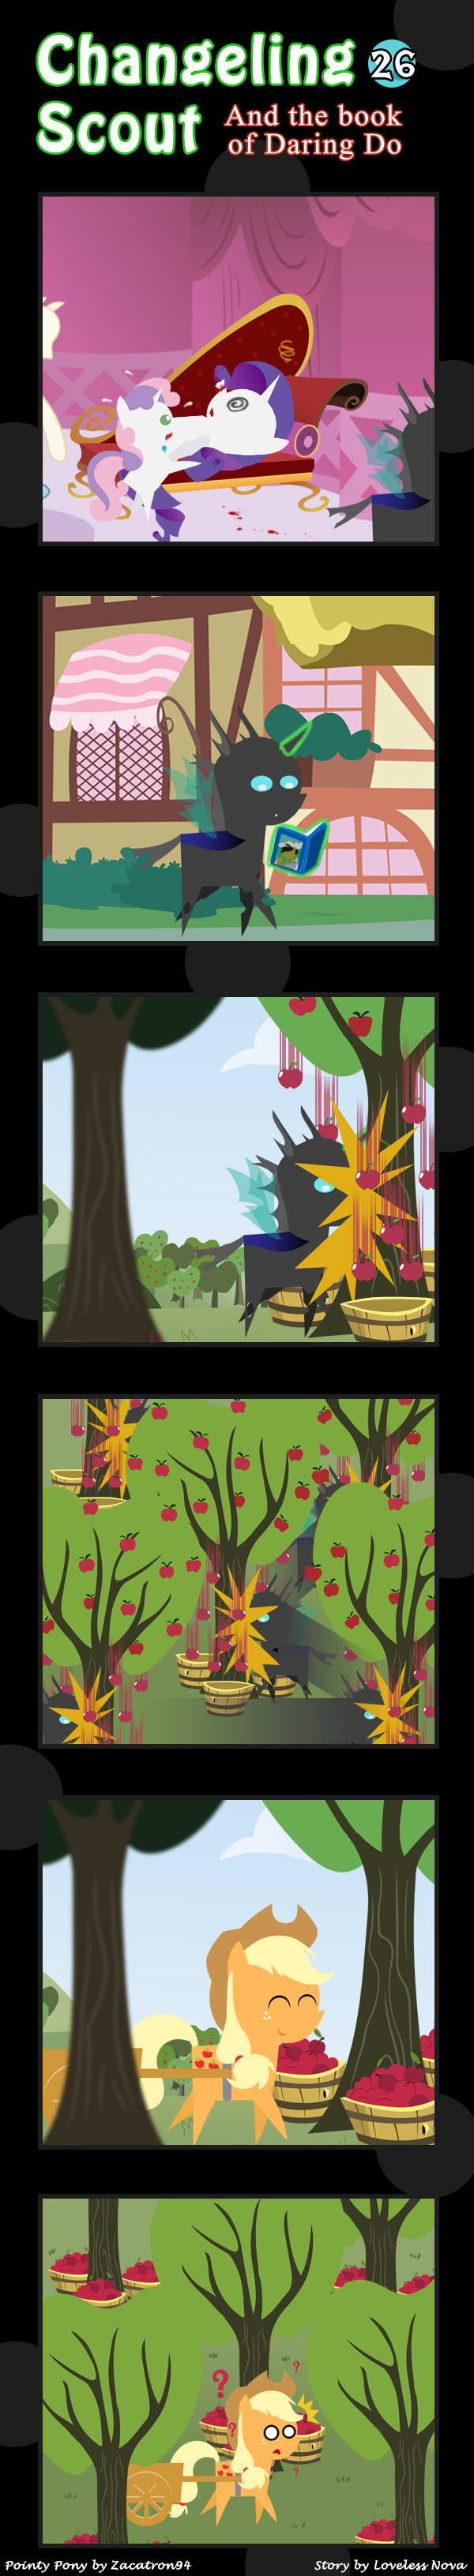 Changeling Scout And The Book Of Daring Do 26